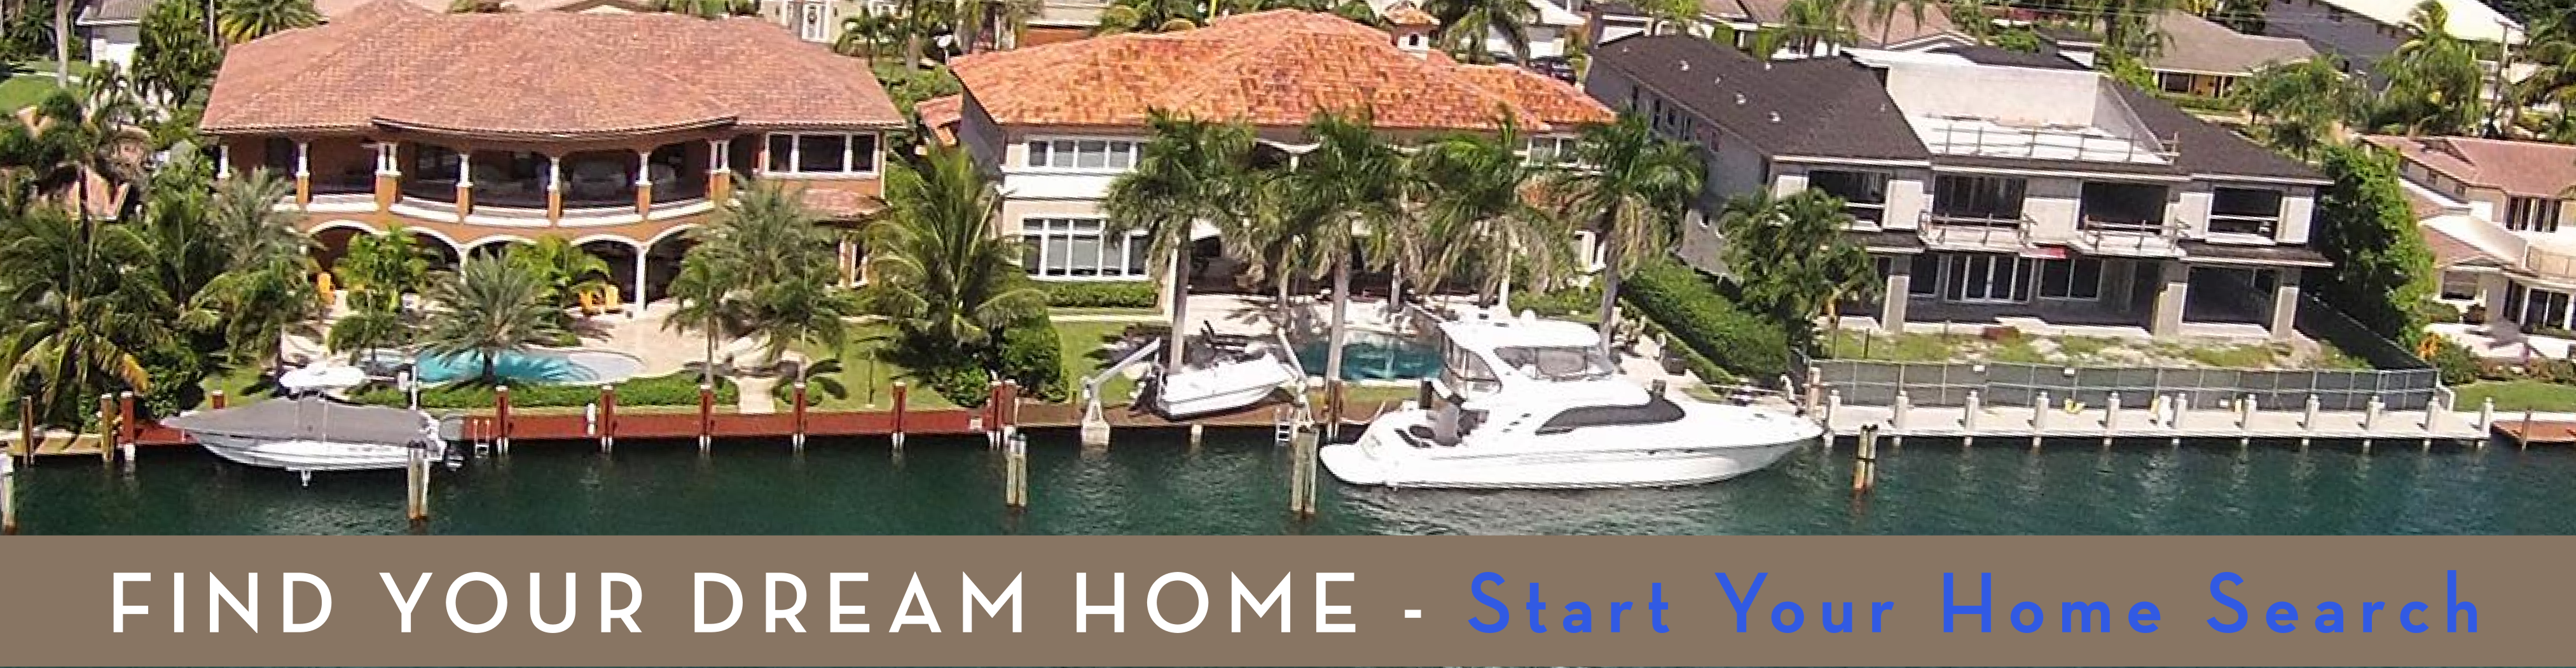 David Weinstein, Boca Raton, Keller Williams, Buyer, Seller, Realtor, Real Estate, Homes, Homes For Sale